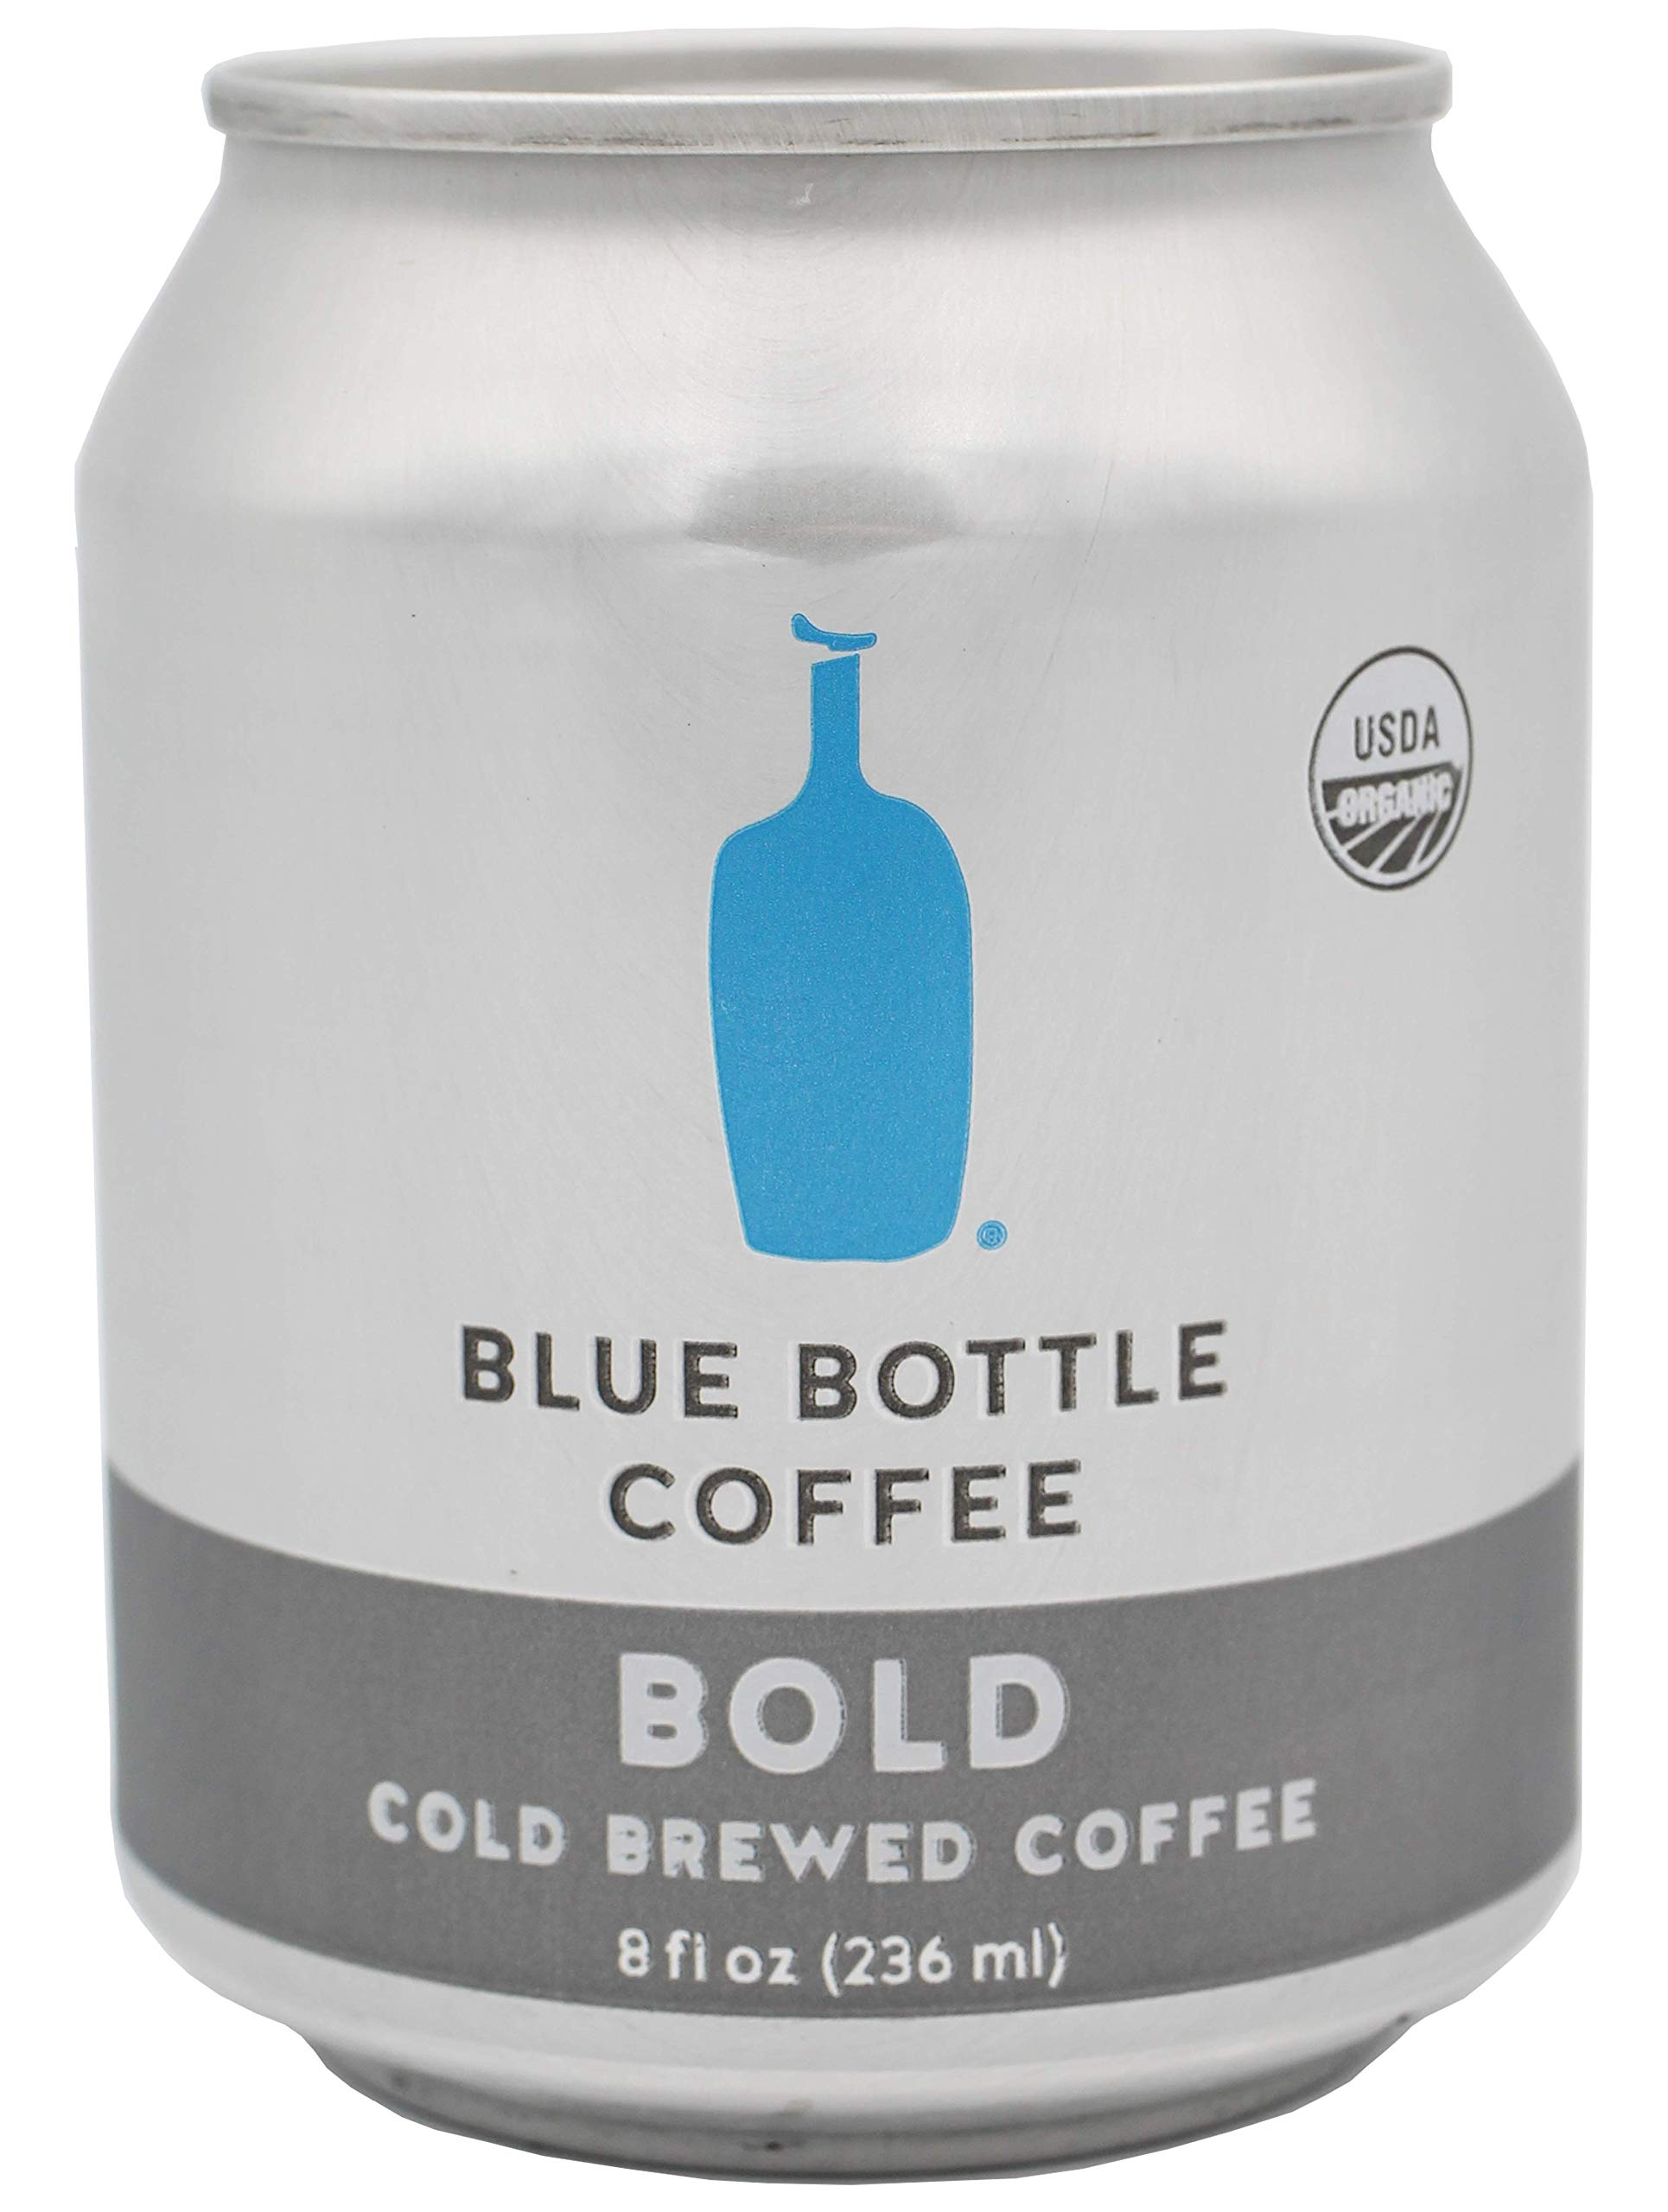 Blue Bottle Coffee| BOLD | Cold Brewed Coffee, 8 oz | pack of 6| by Blue Bottle